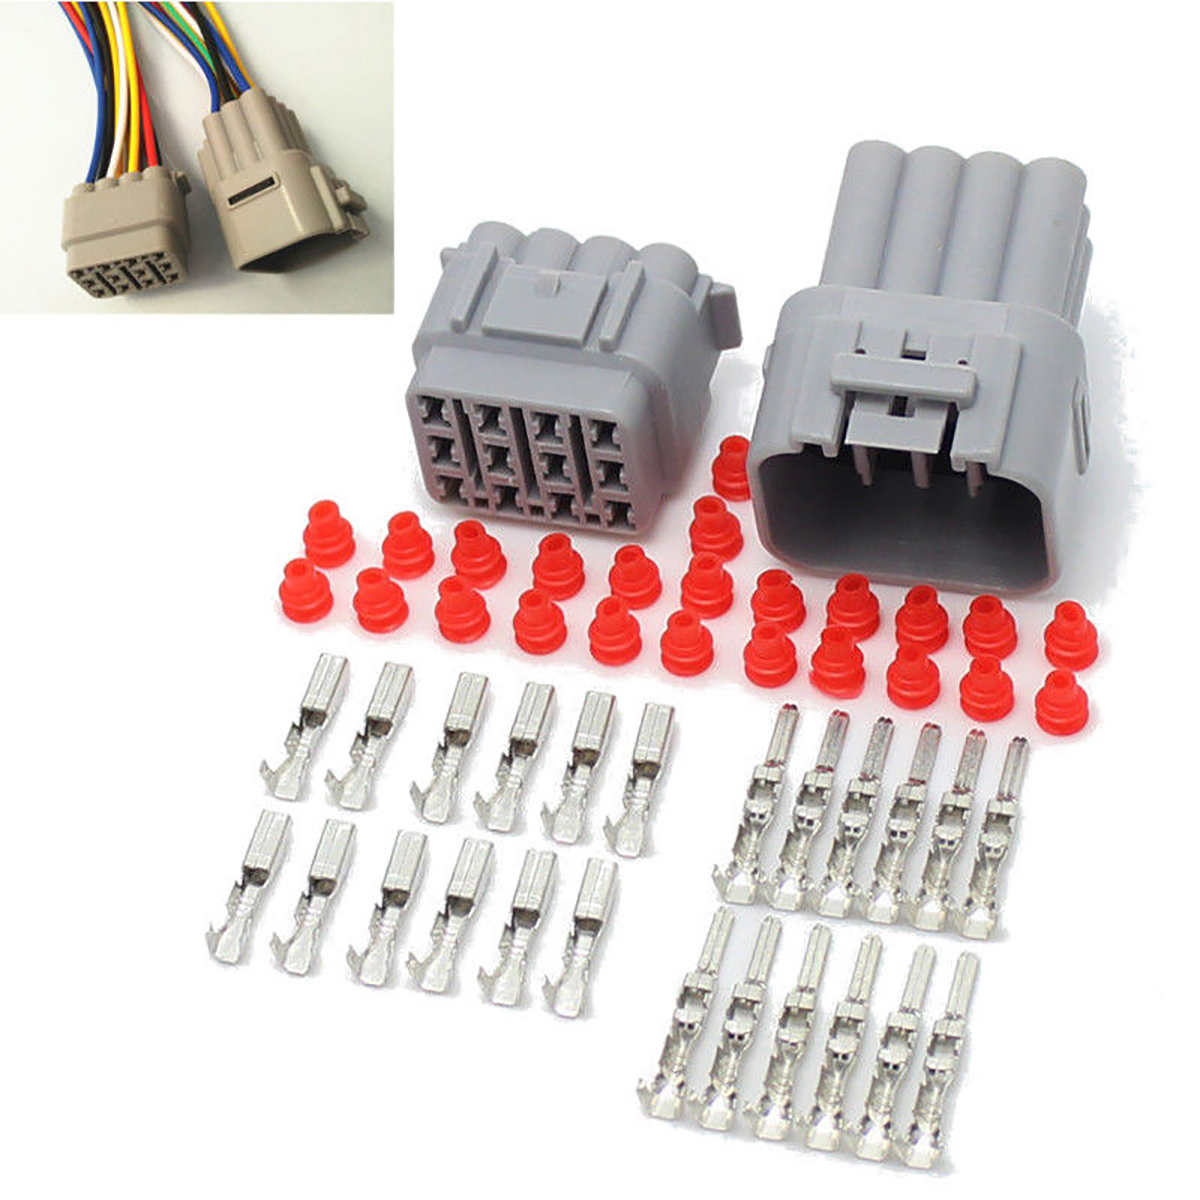 1 Set Waterproof Connectors 12 Pin Way Sealed Electrical Wire Connector Plug For Auto Car Truck black 50 sets 4 pin dj3041y 1 6 11 21 deutsch connectors dt04 4p dt06 4s automobile waterproof wire electrical connector plug